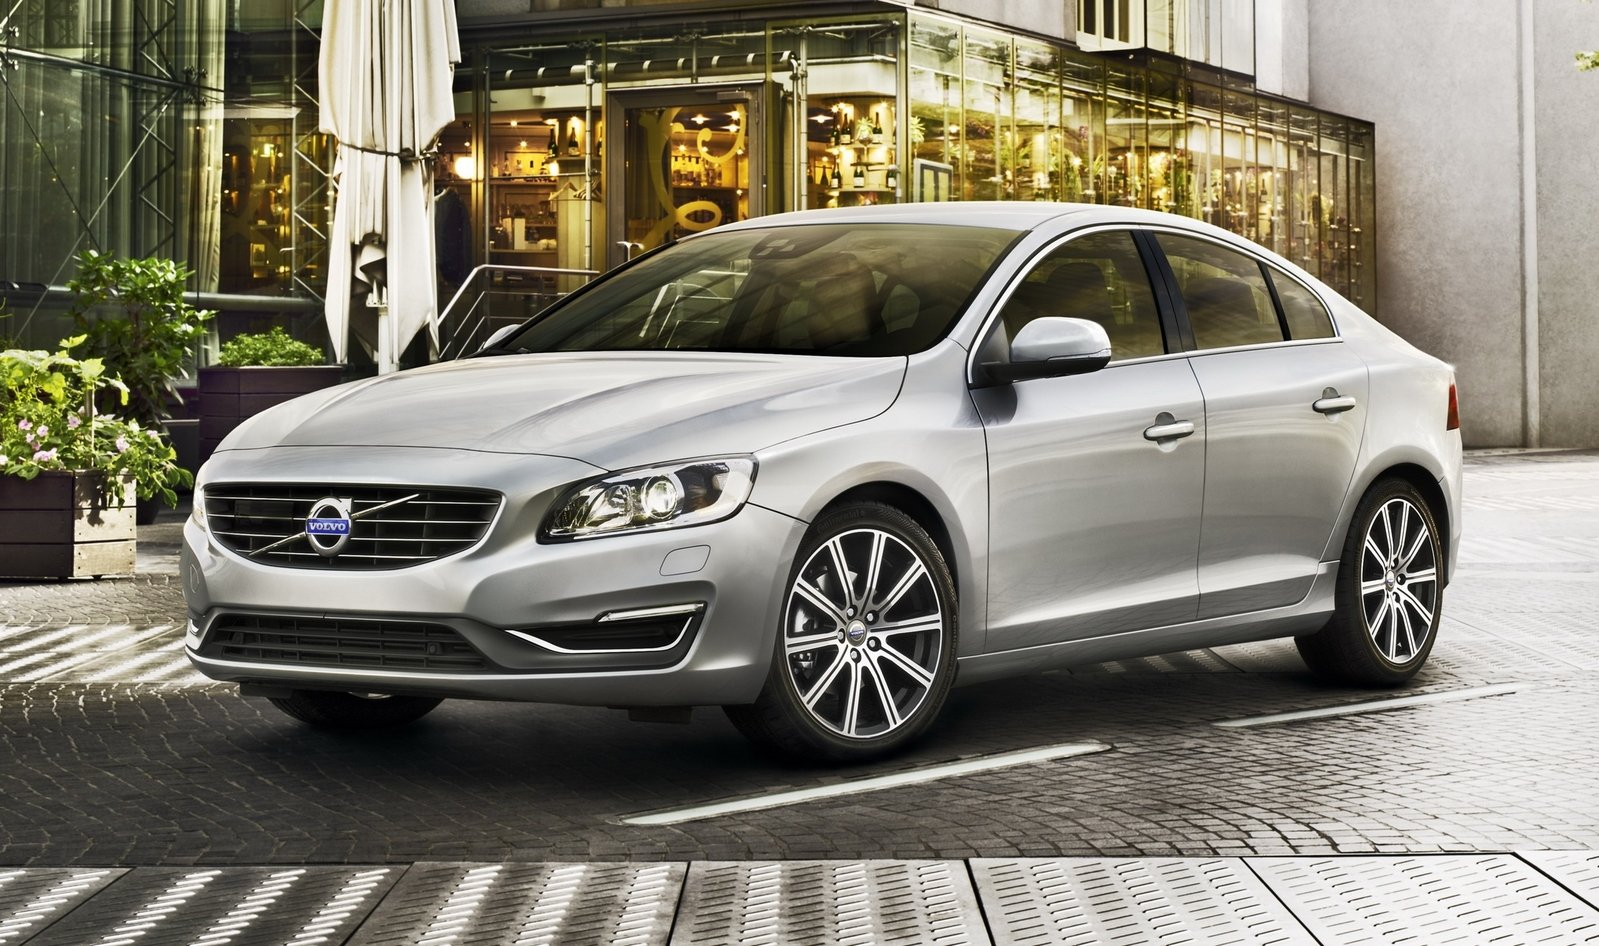 2014 volvo s60_1600x0w volvo s60 reviews, specs & prices top speed Volvo Wiring Harness Problems at gsmx.co